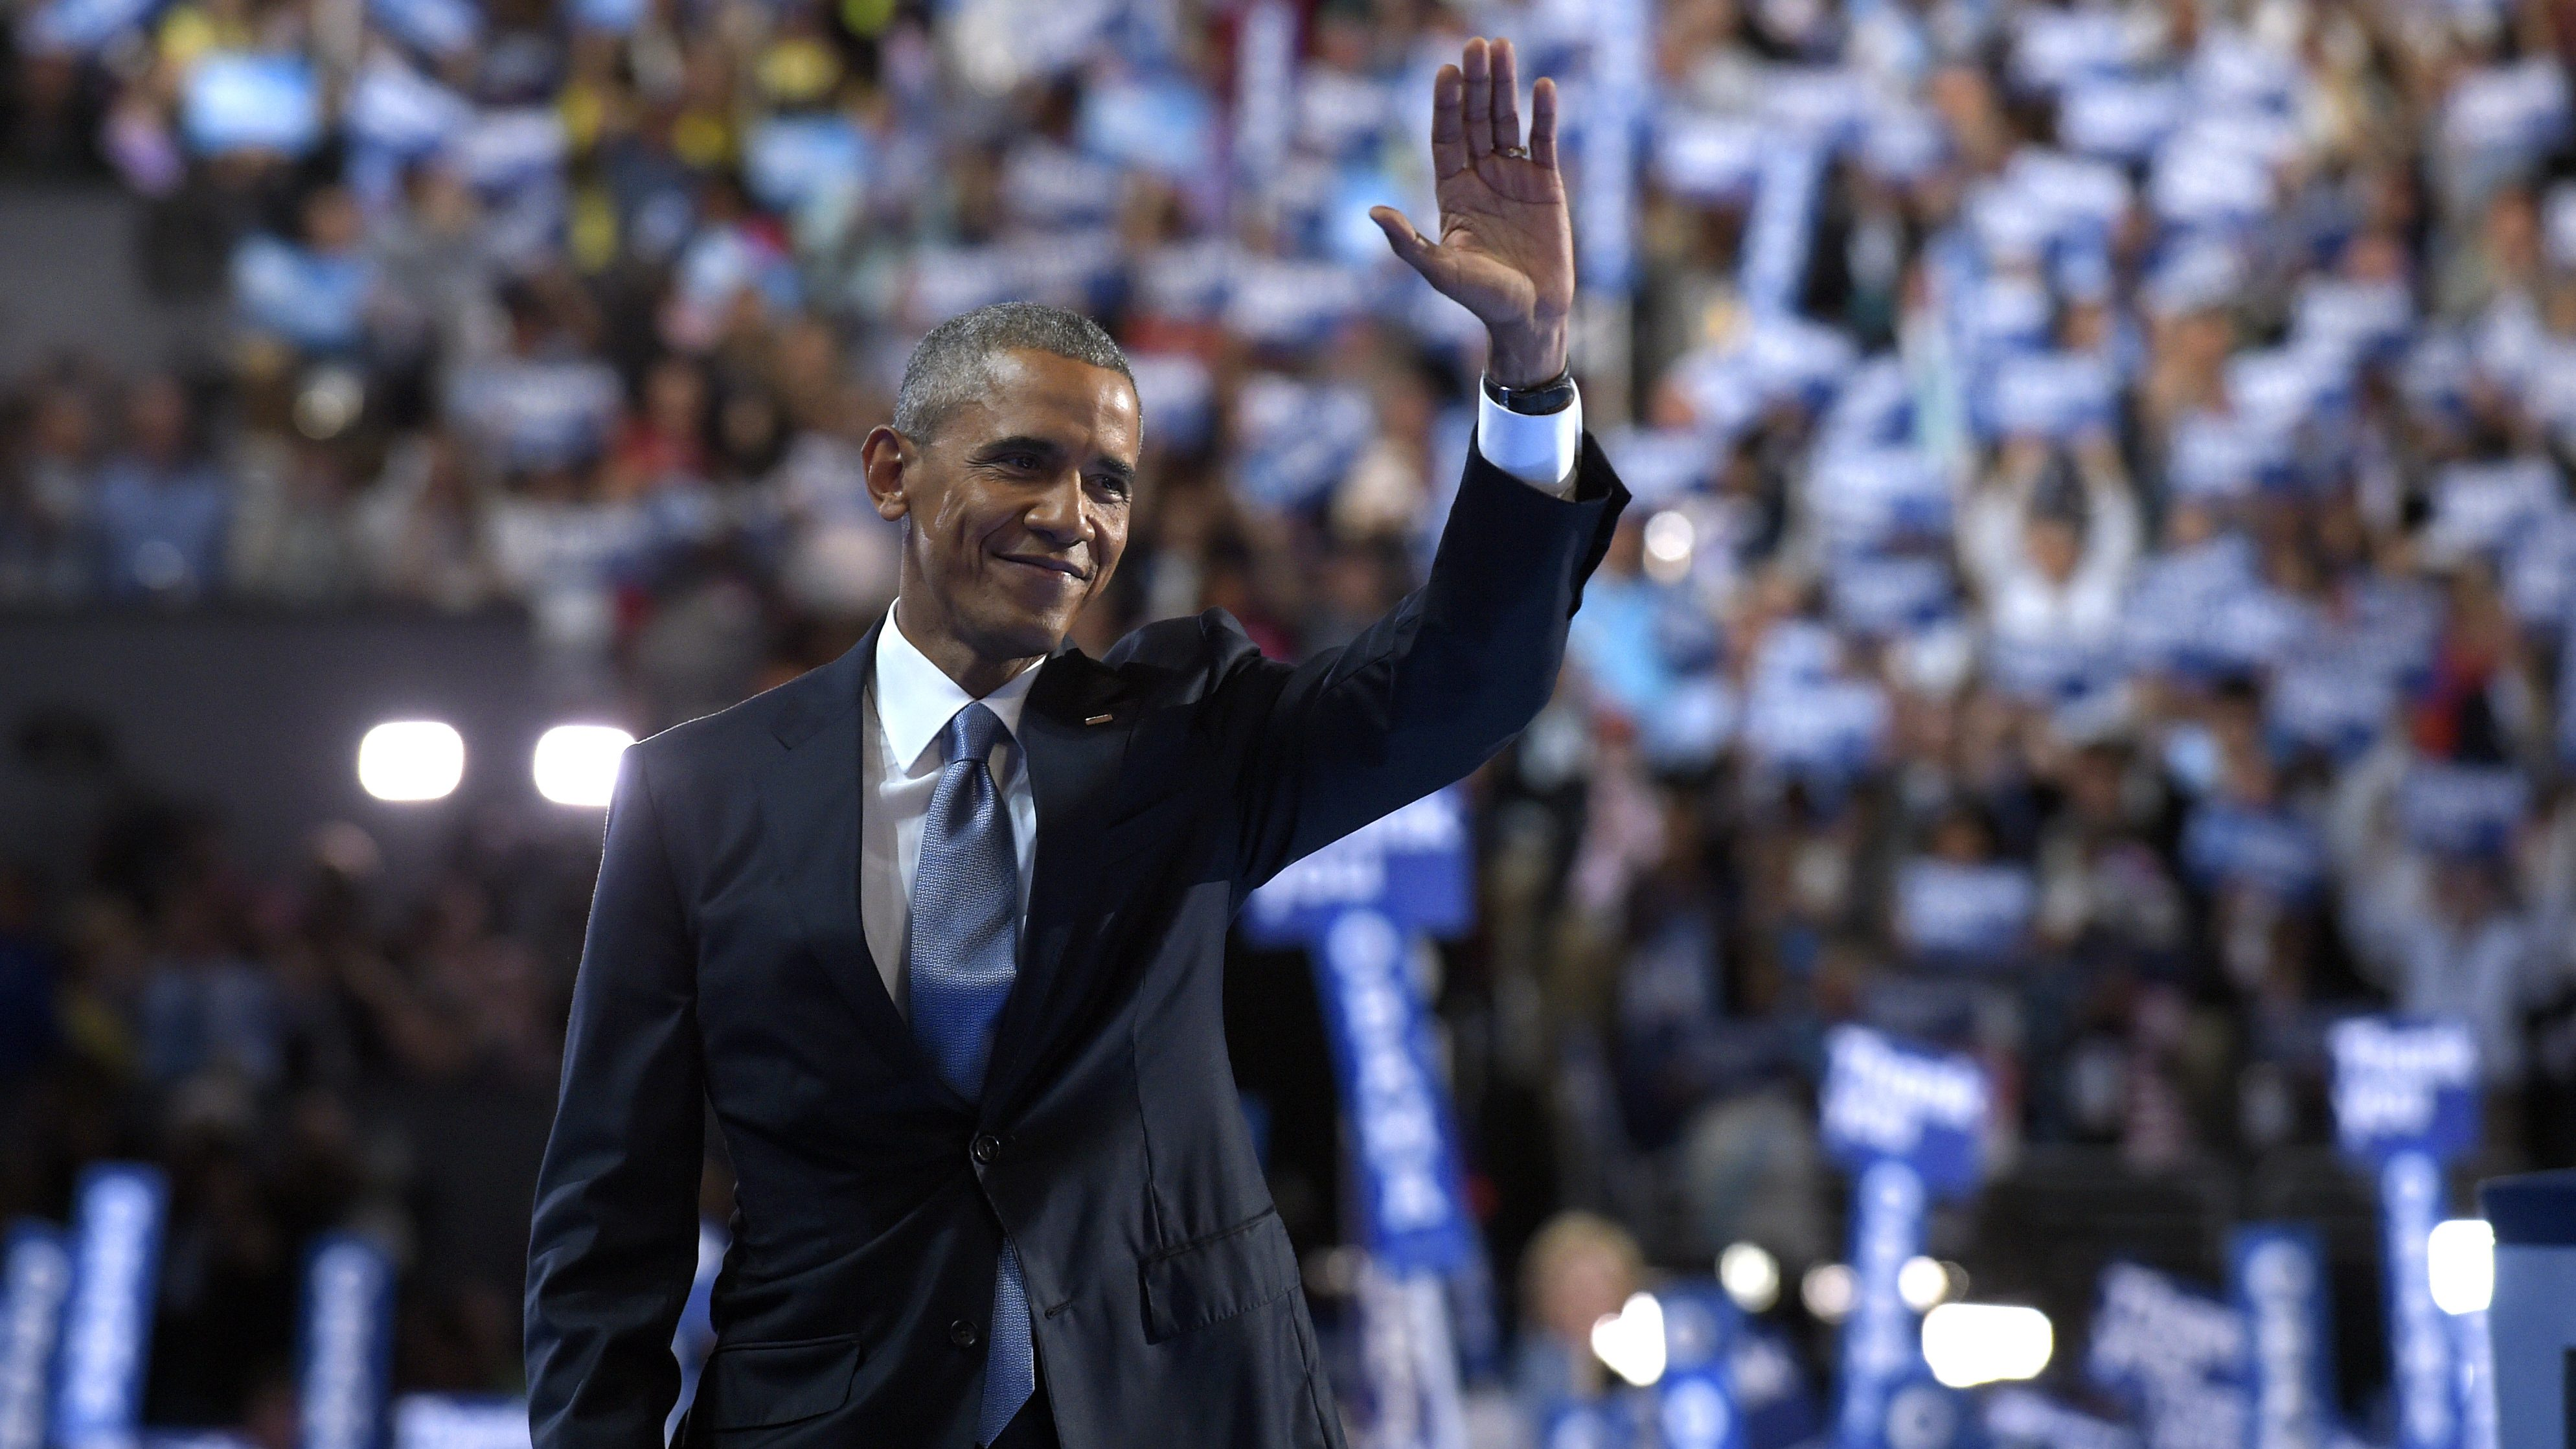 President Barack Obama waves to the crowd after speaking at the Democratic National Convention in Philadelphia, Wednesday, July 27, 2016. (AP Photo/Susan Walsh)